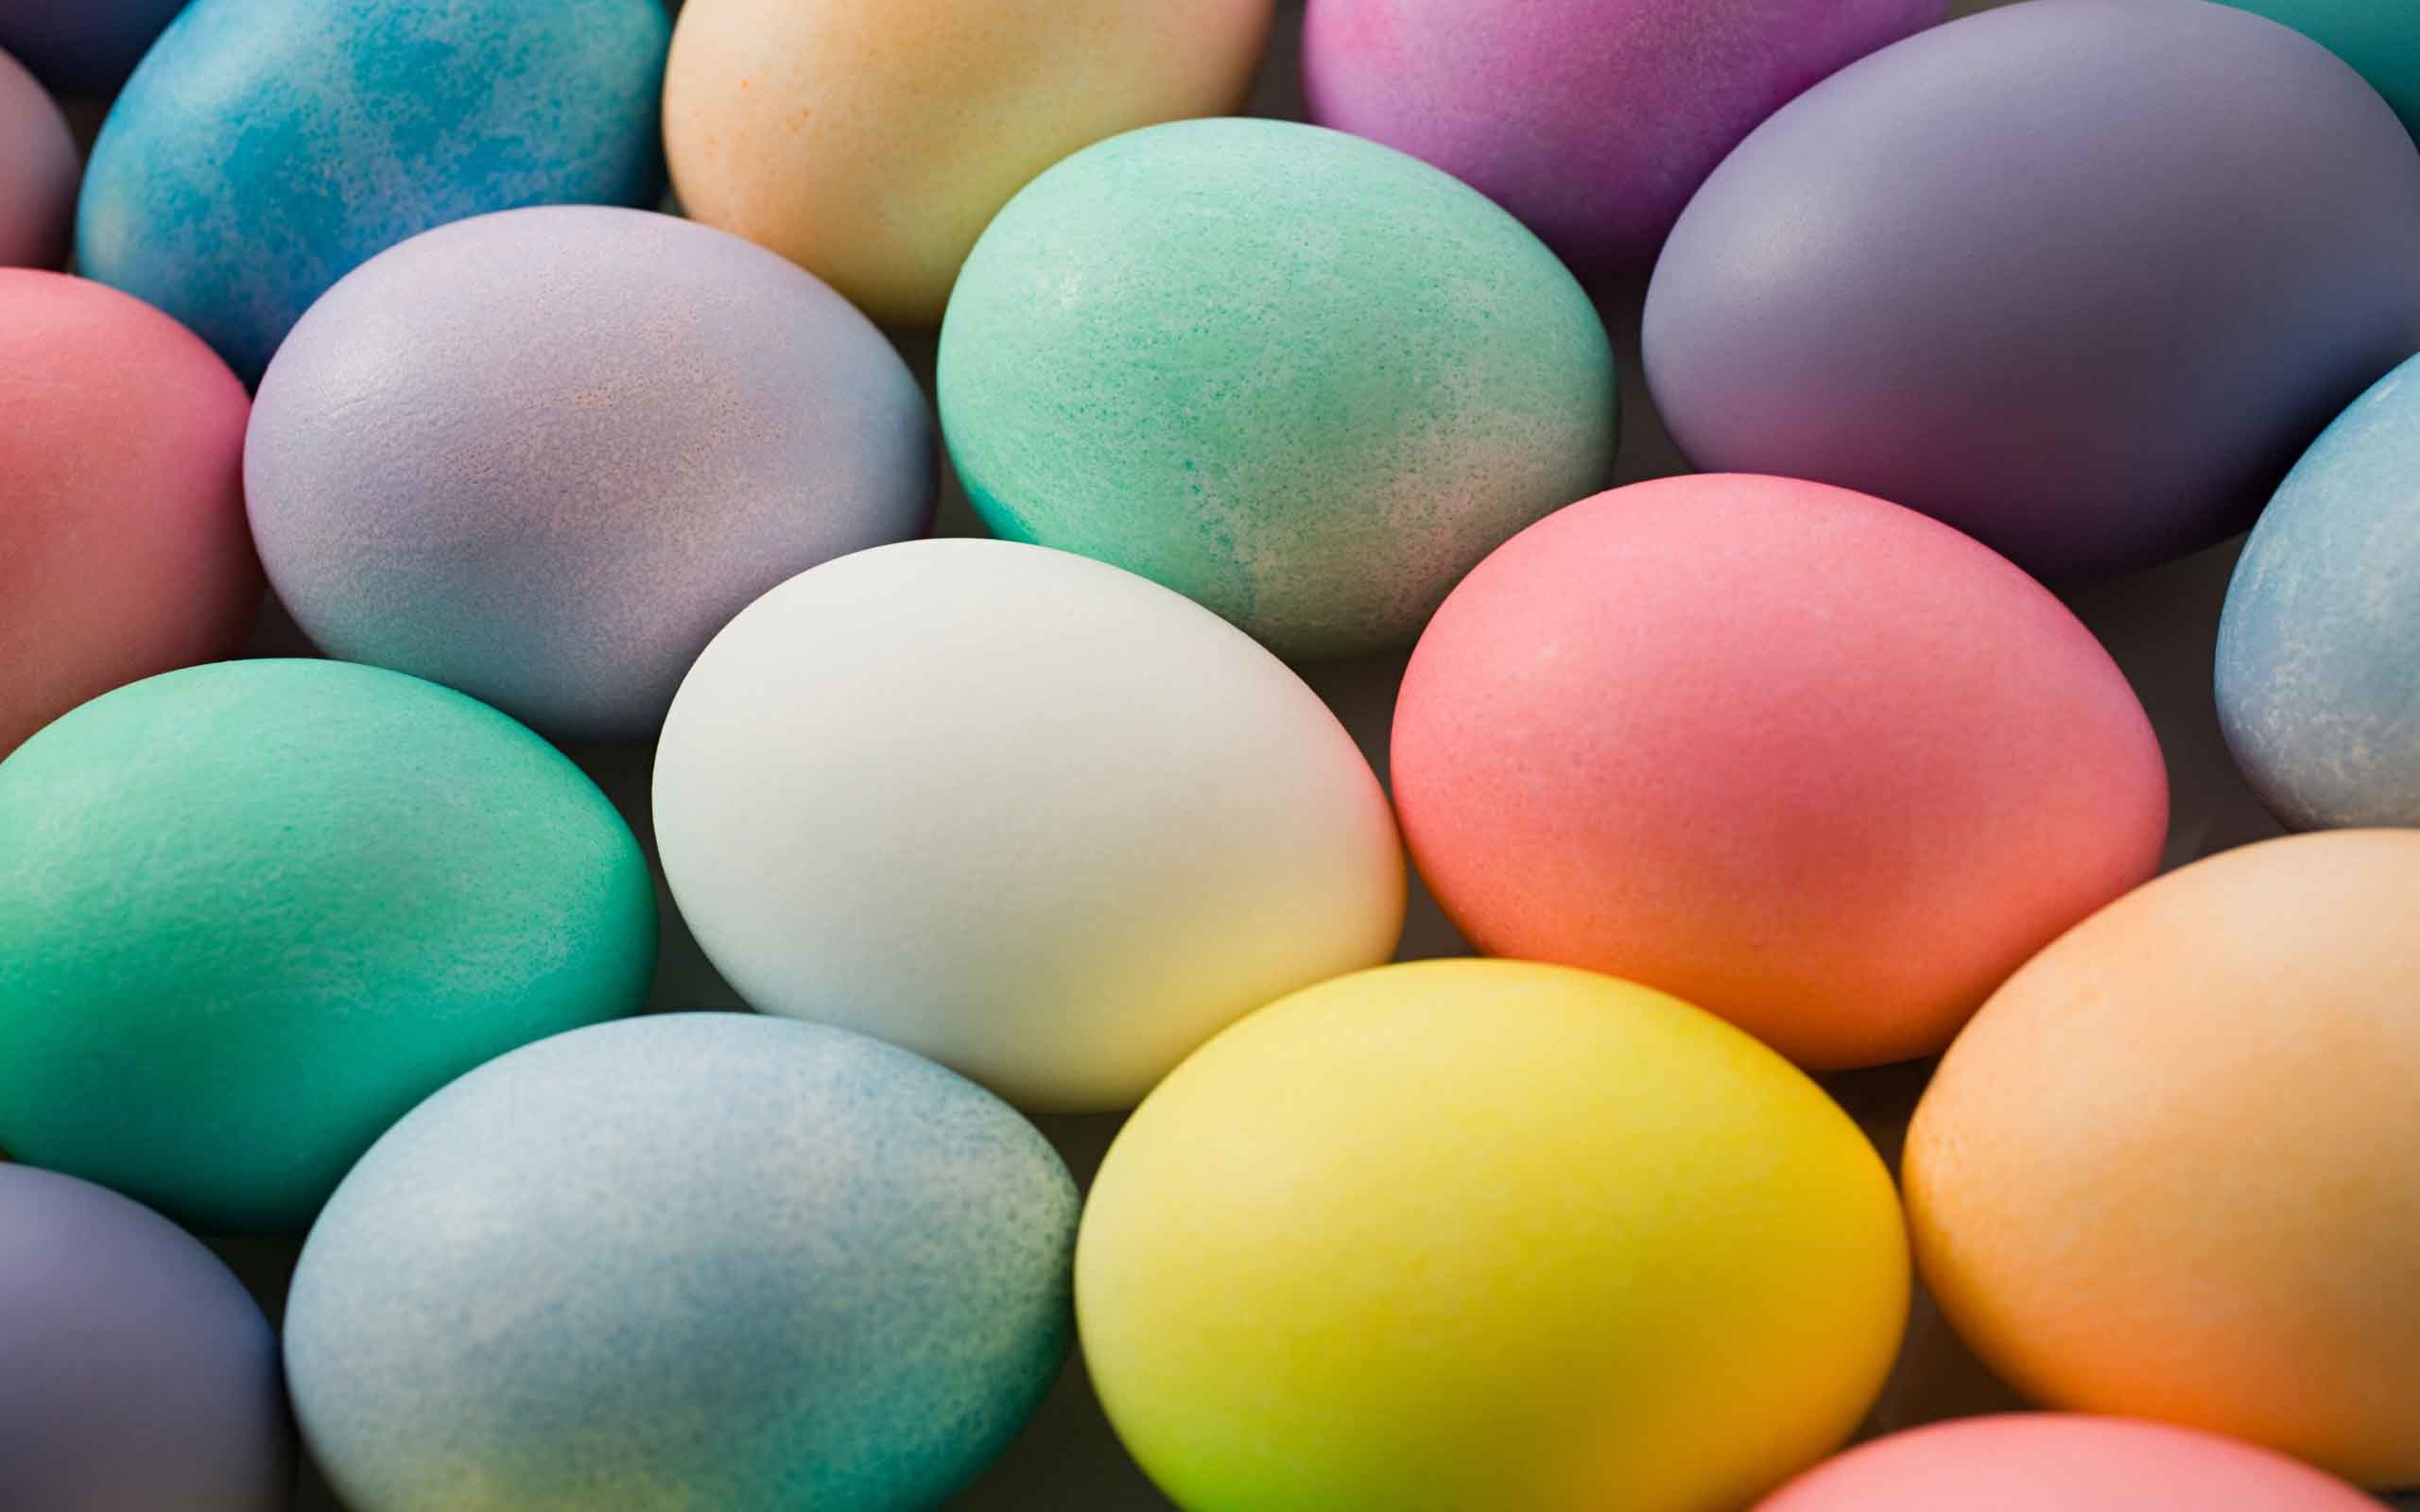 2560x1600 Free Wallpapers - Lots of colorful Easter eggs wallpaper